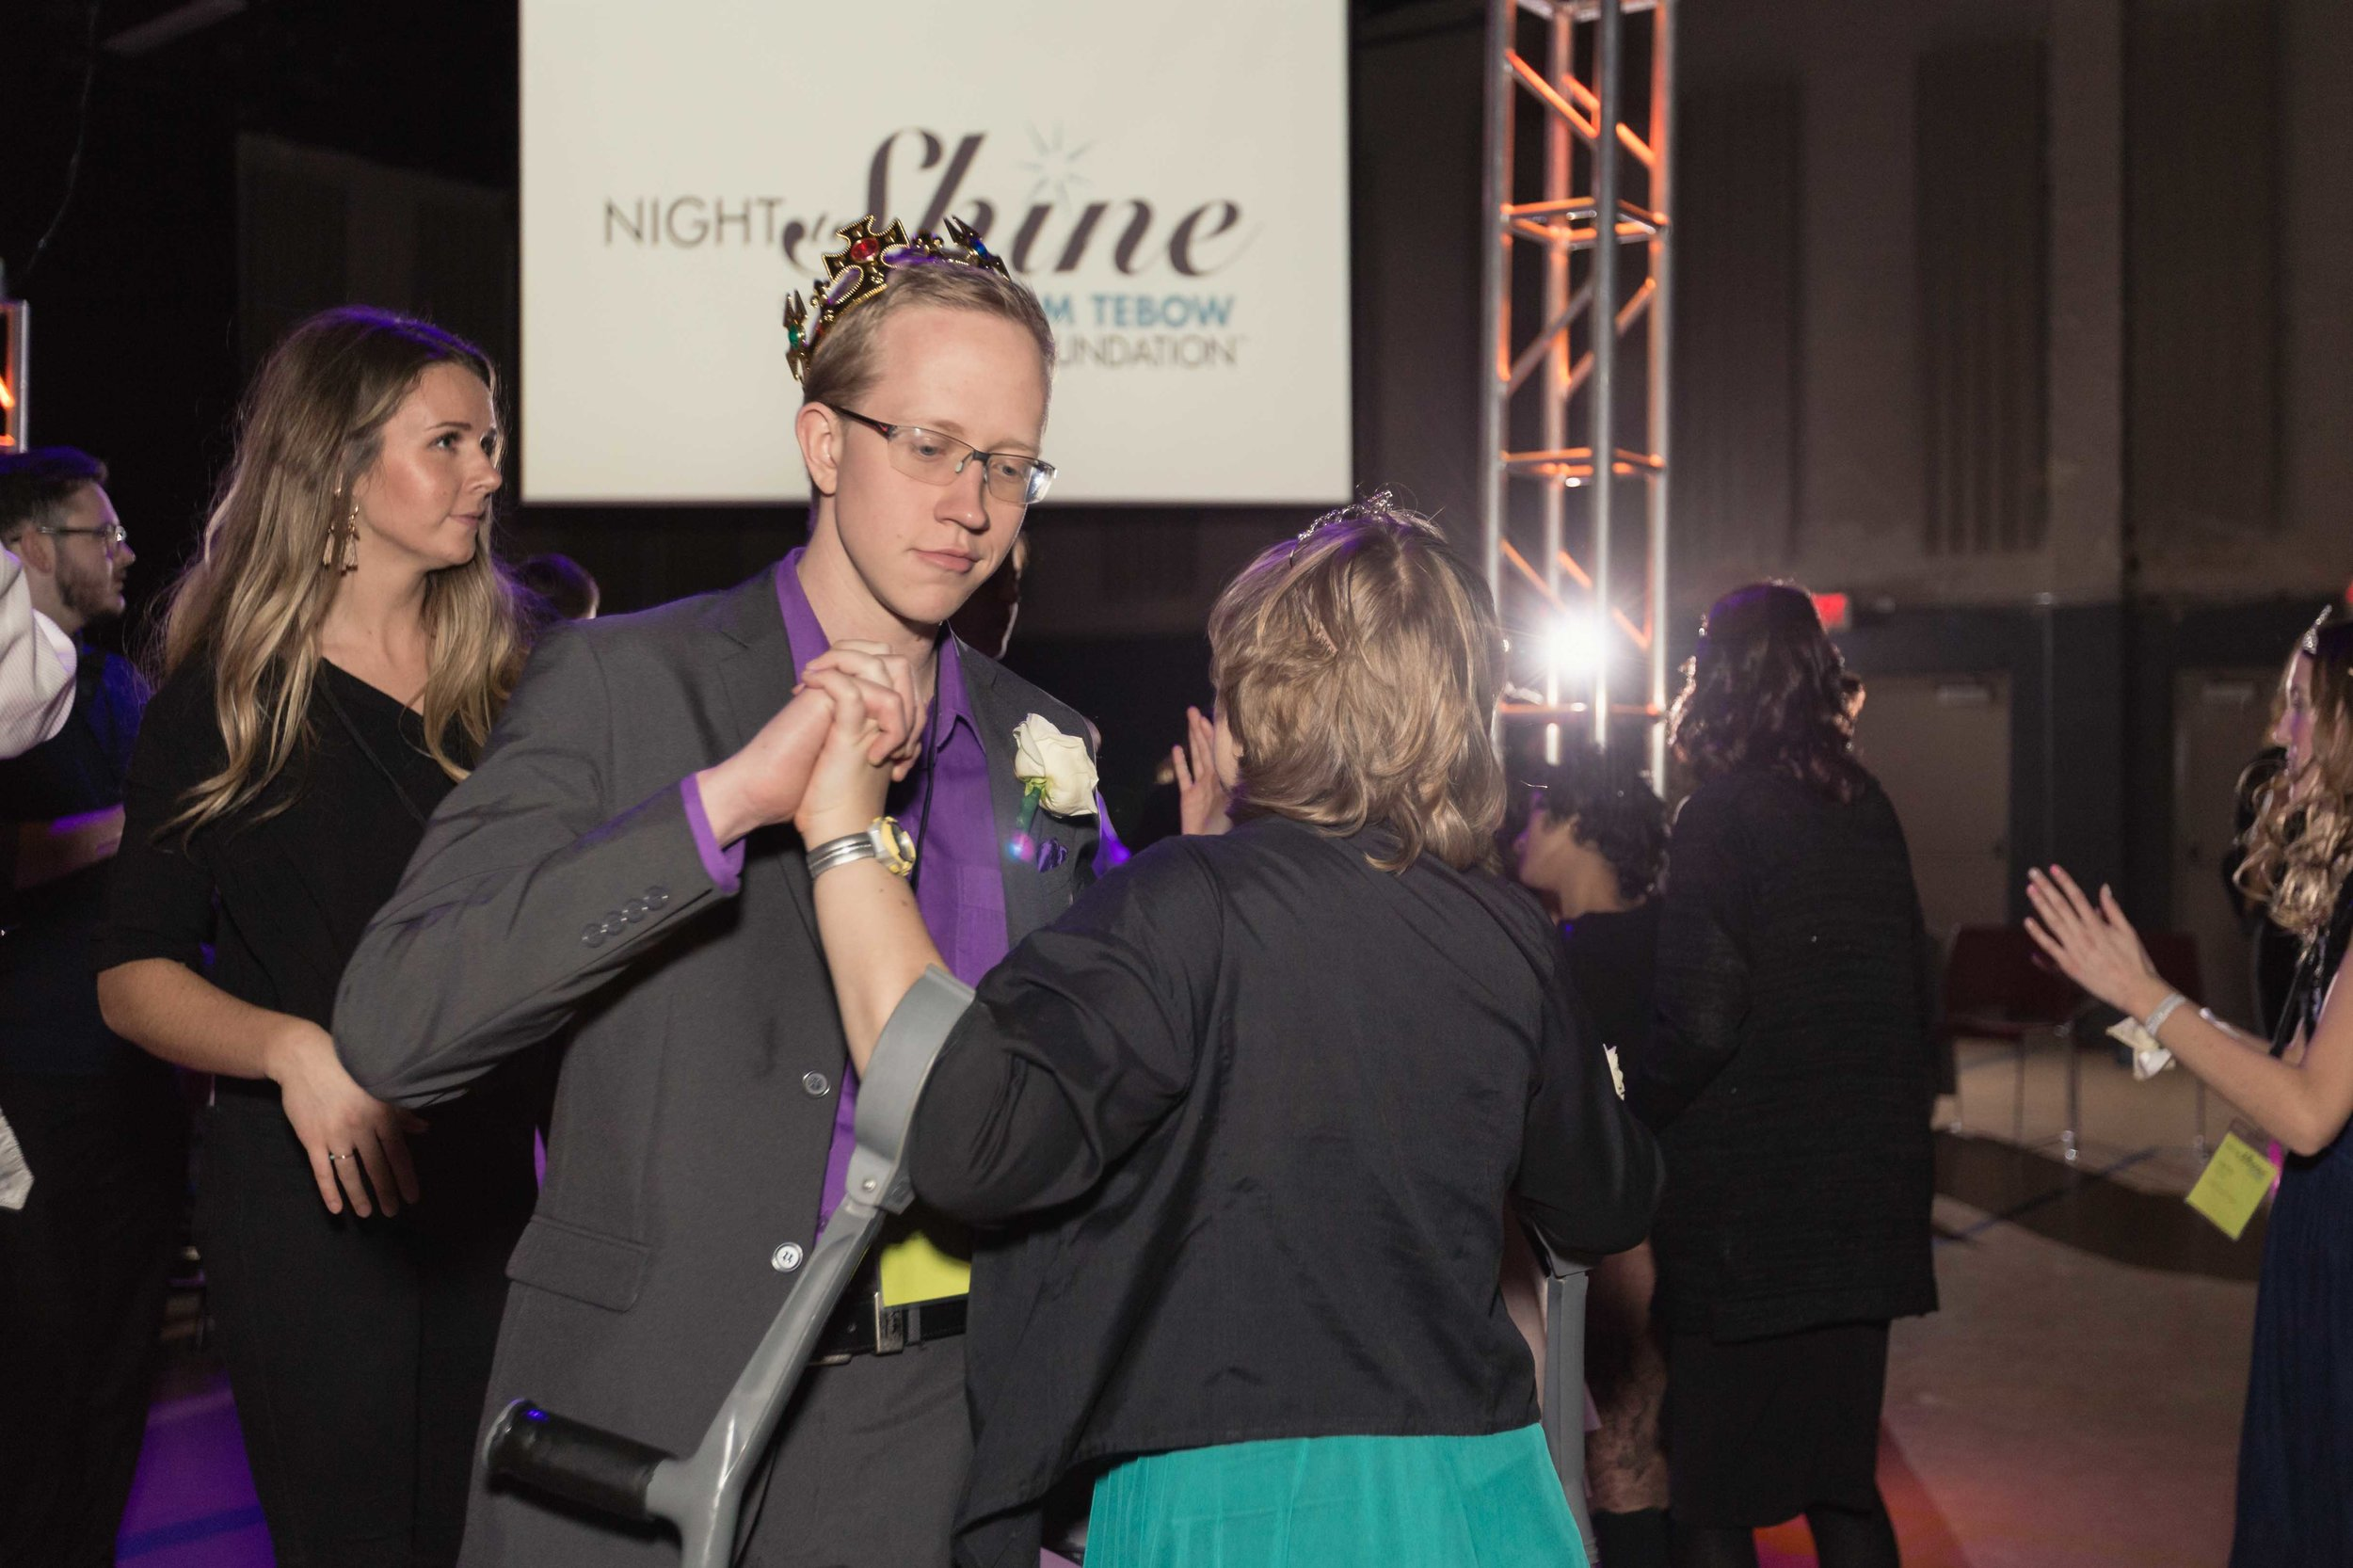 InBetweenDreamsWedding_NightToShine2018_HorizonChurch (418 of 514).jpg